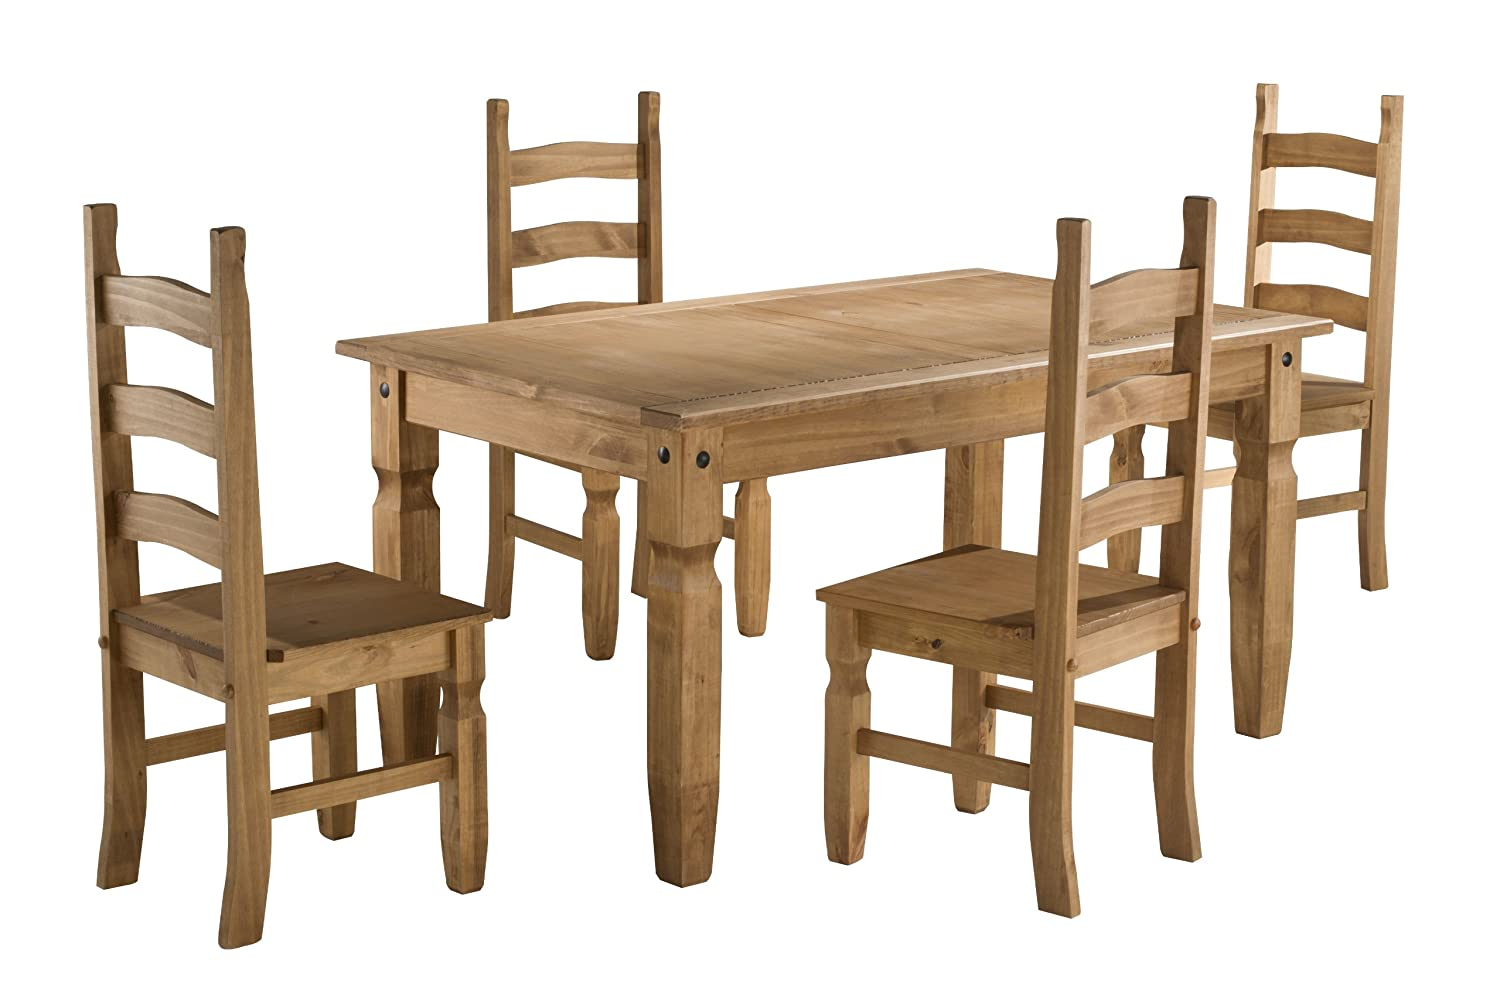 Birlea Corona 5ft Dining Set (Table U0026 4 Chairs), Waxed Pine: Amazon.co.uk:  Kitchen U0026 Home